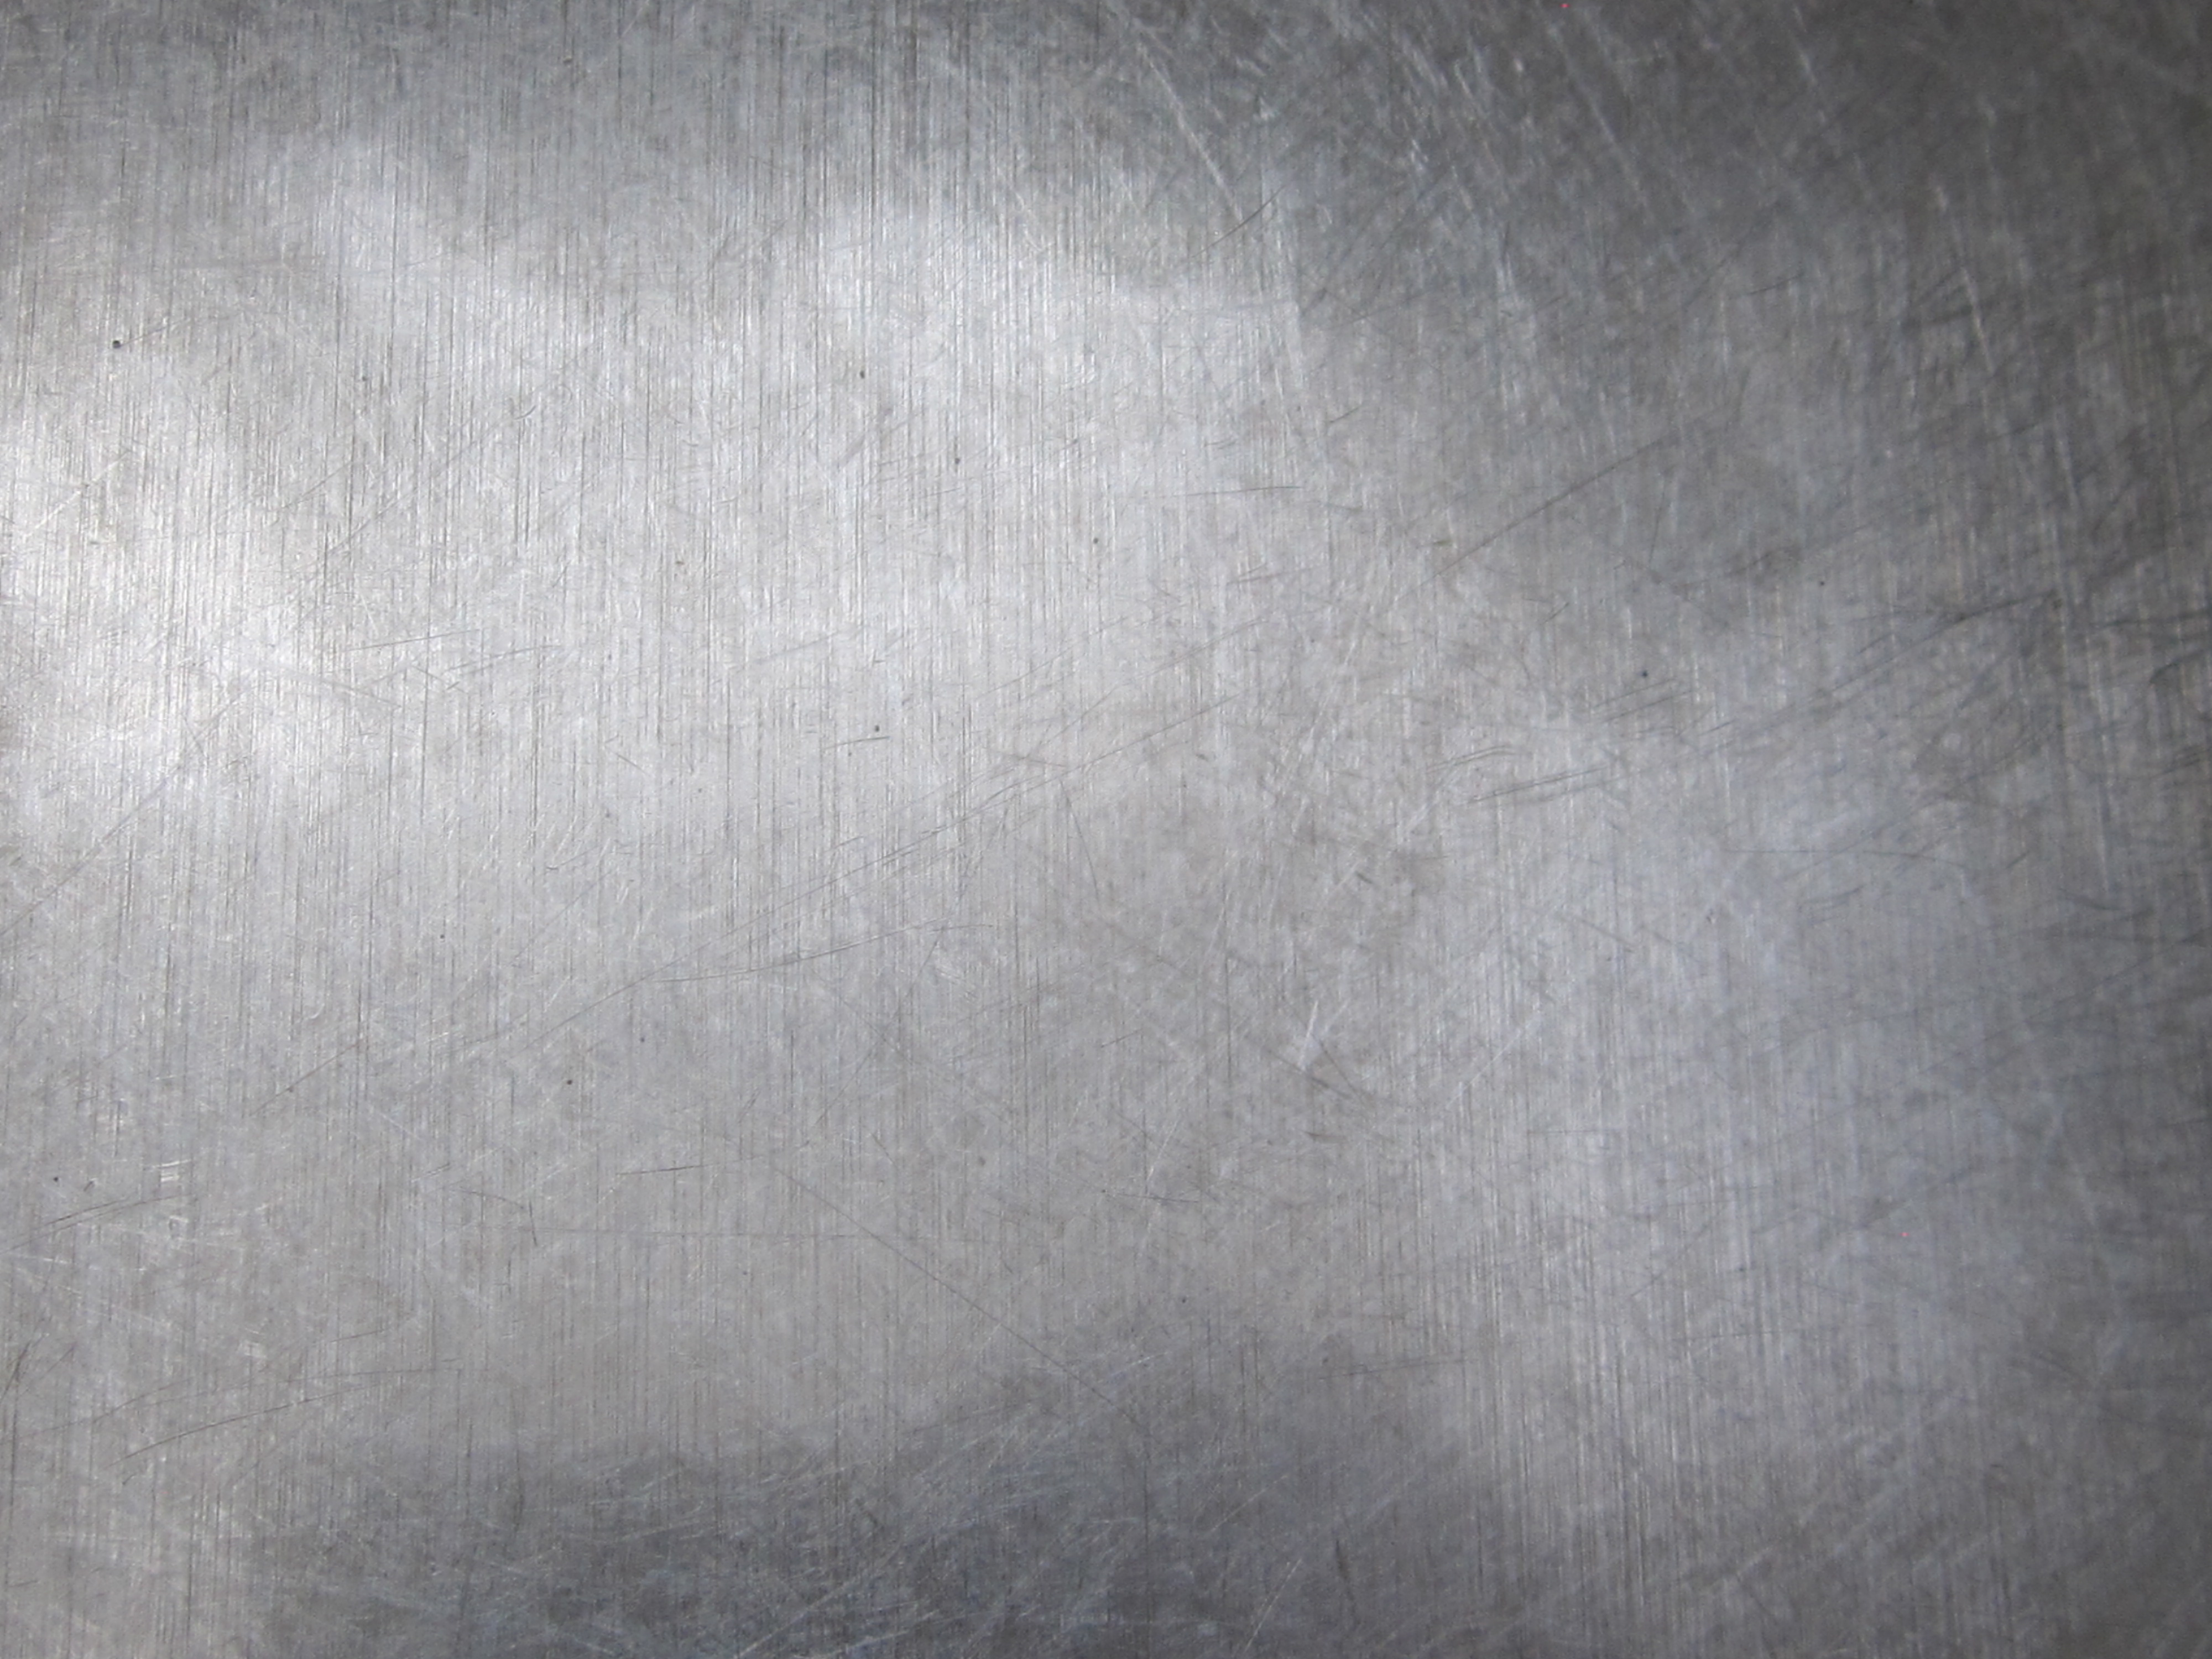 Brushed Metal Surface Flickr Photo Sharing